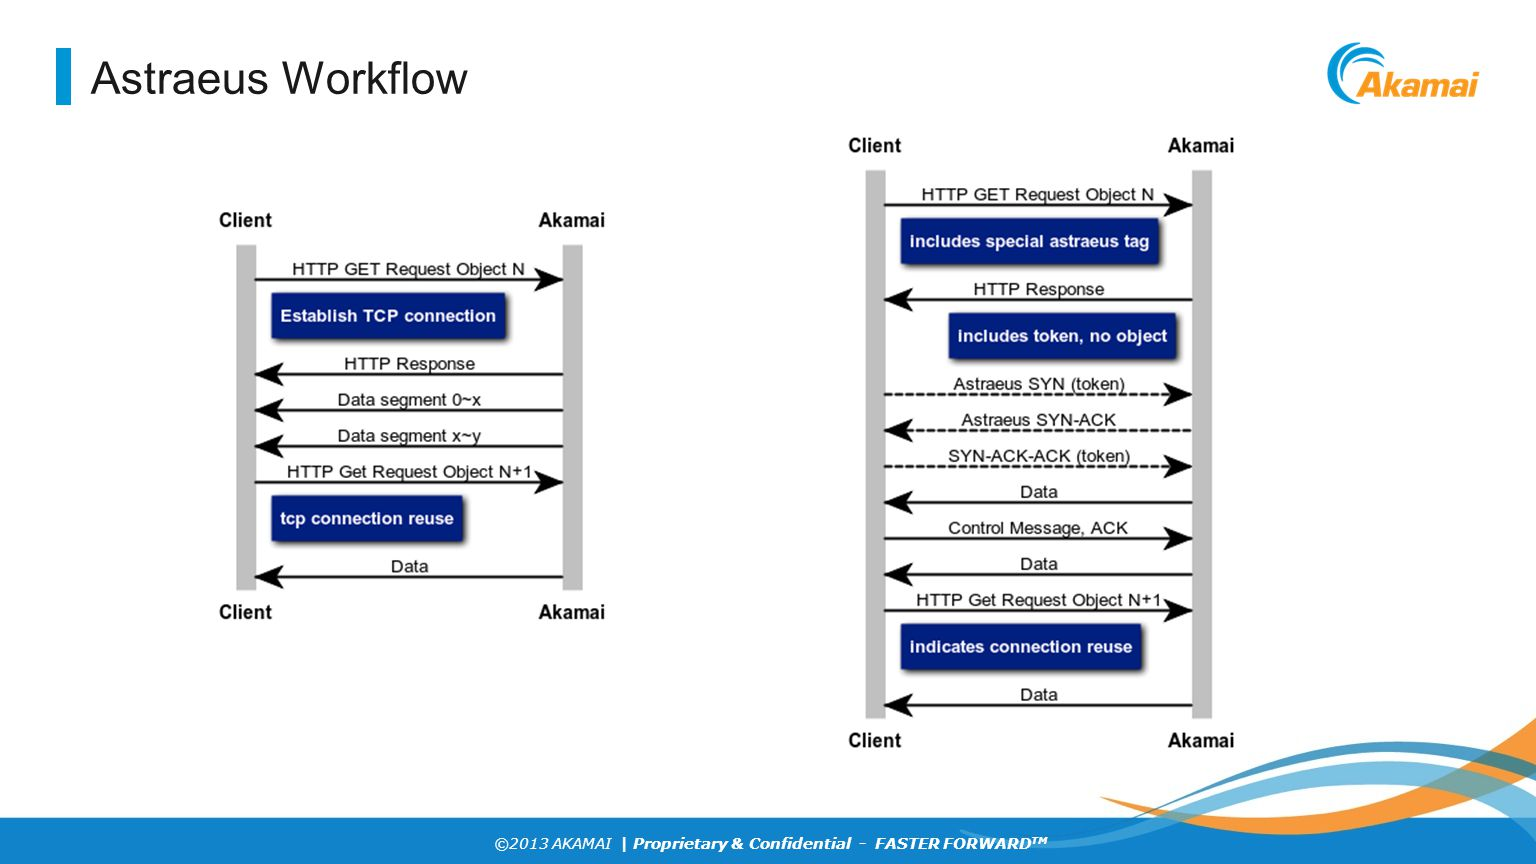 Astraeus Workflow Request flow showing HTTP (on the left) and Astraeus (on the right).